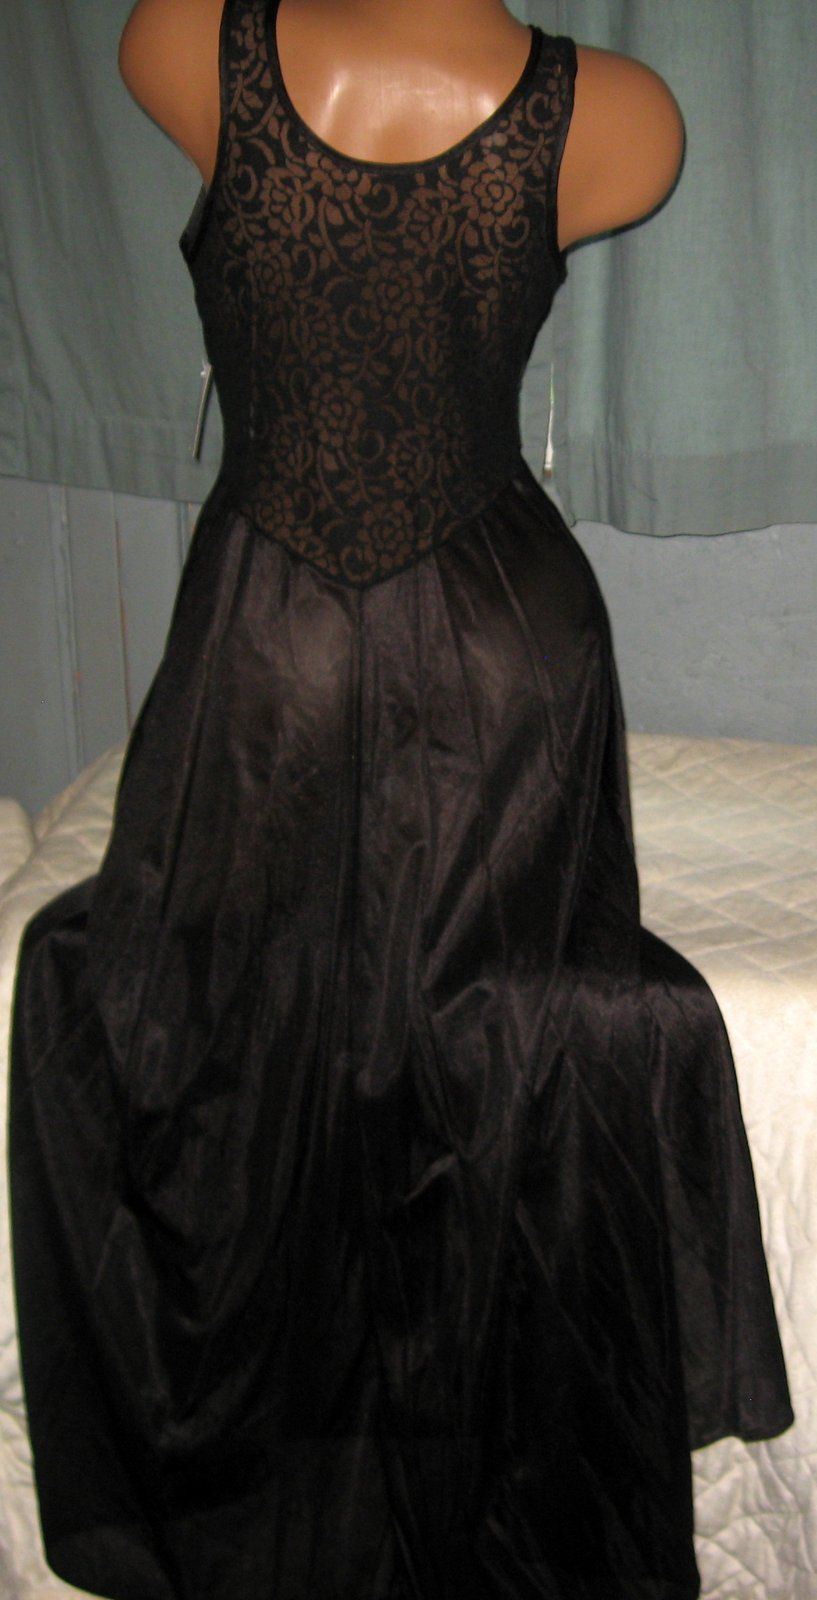 Black Stretch Keyhole Lace Bodice Long Nightgown S Nylon Gowns Slit